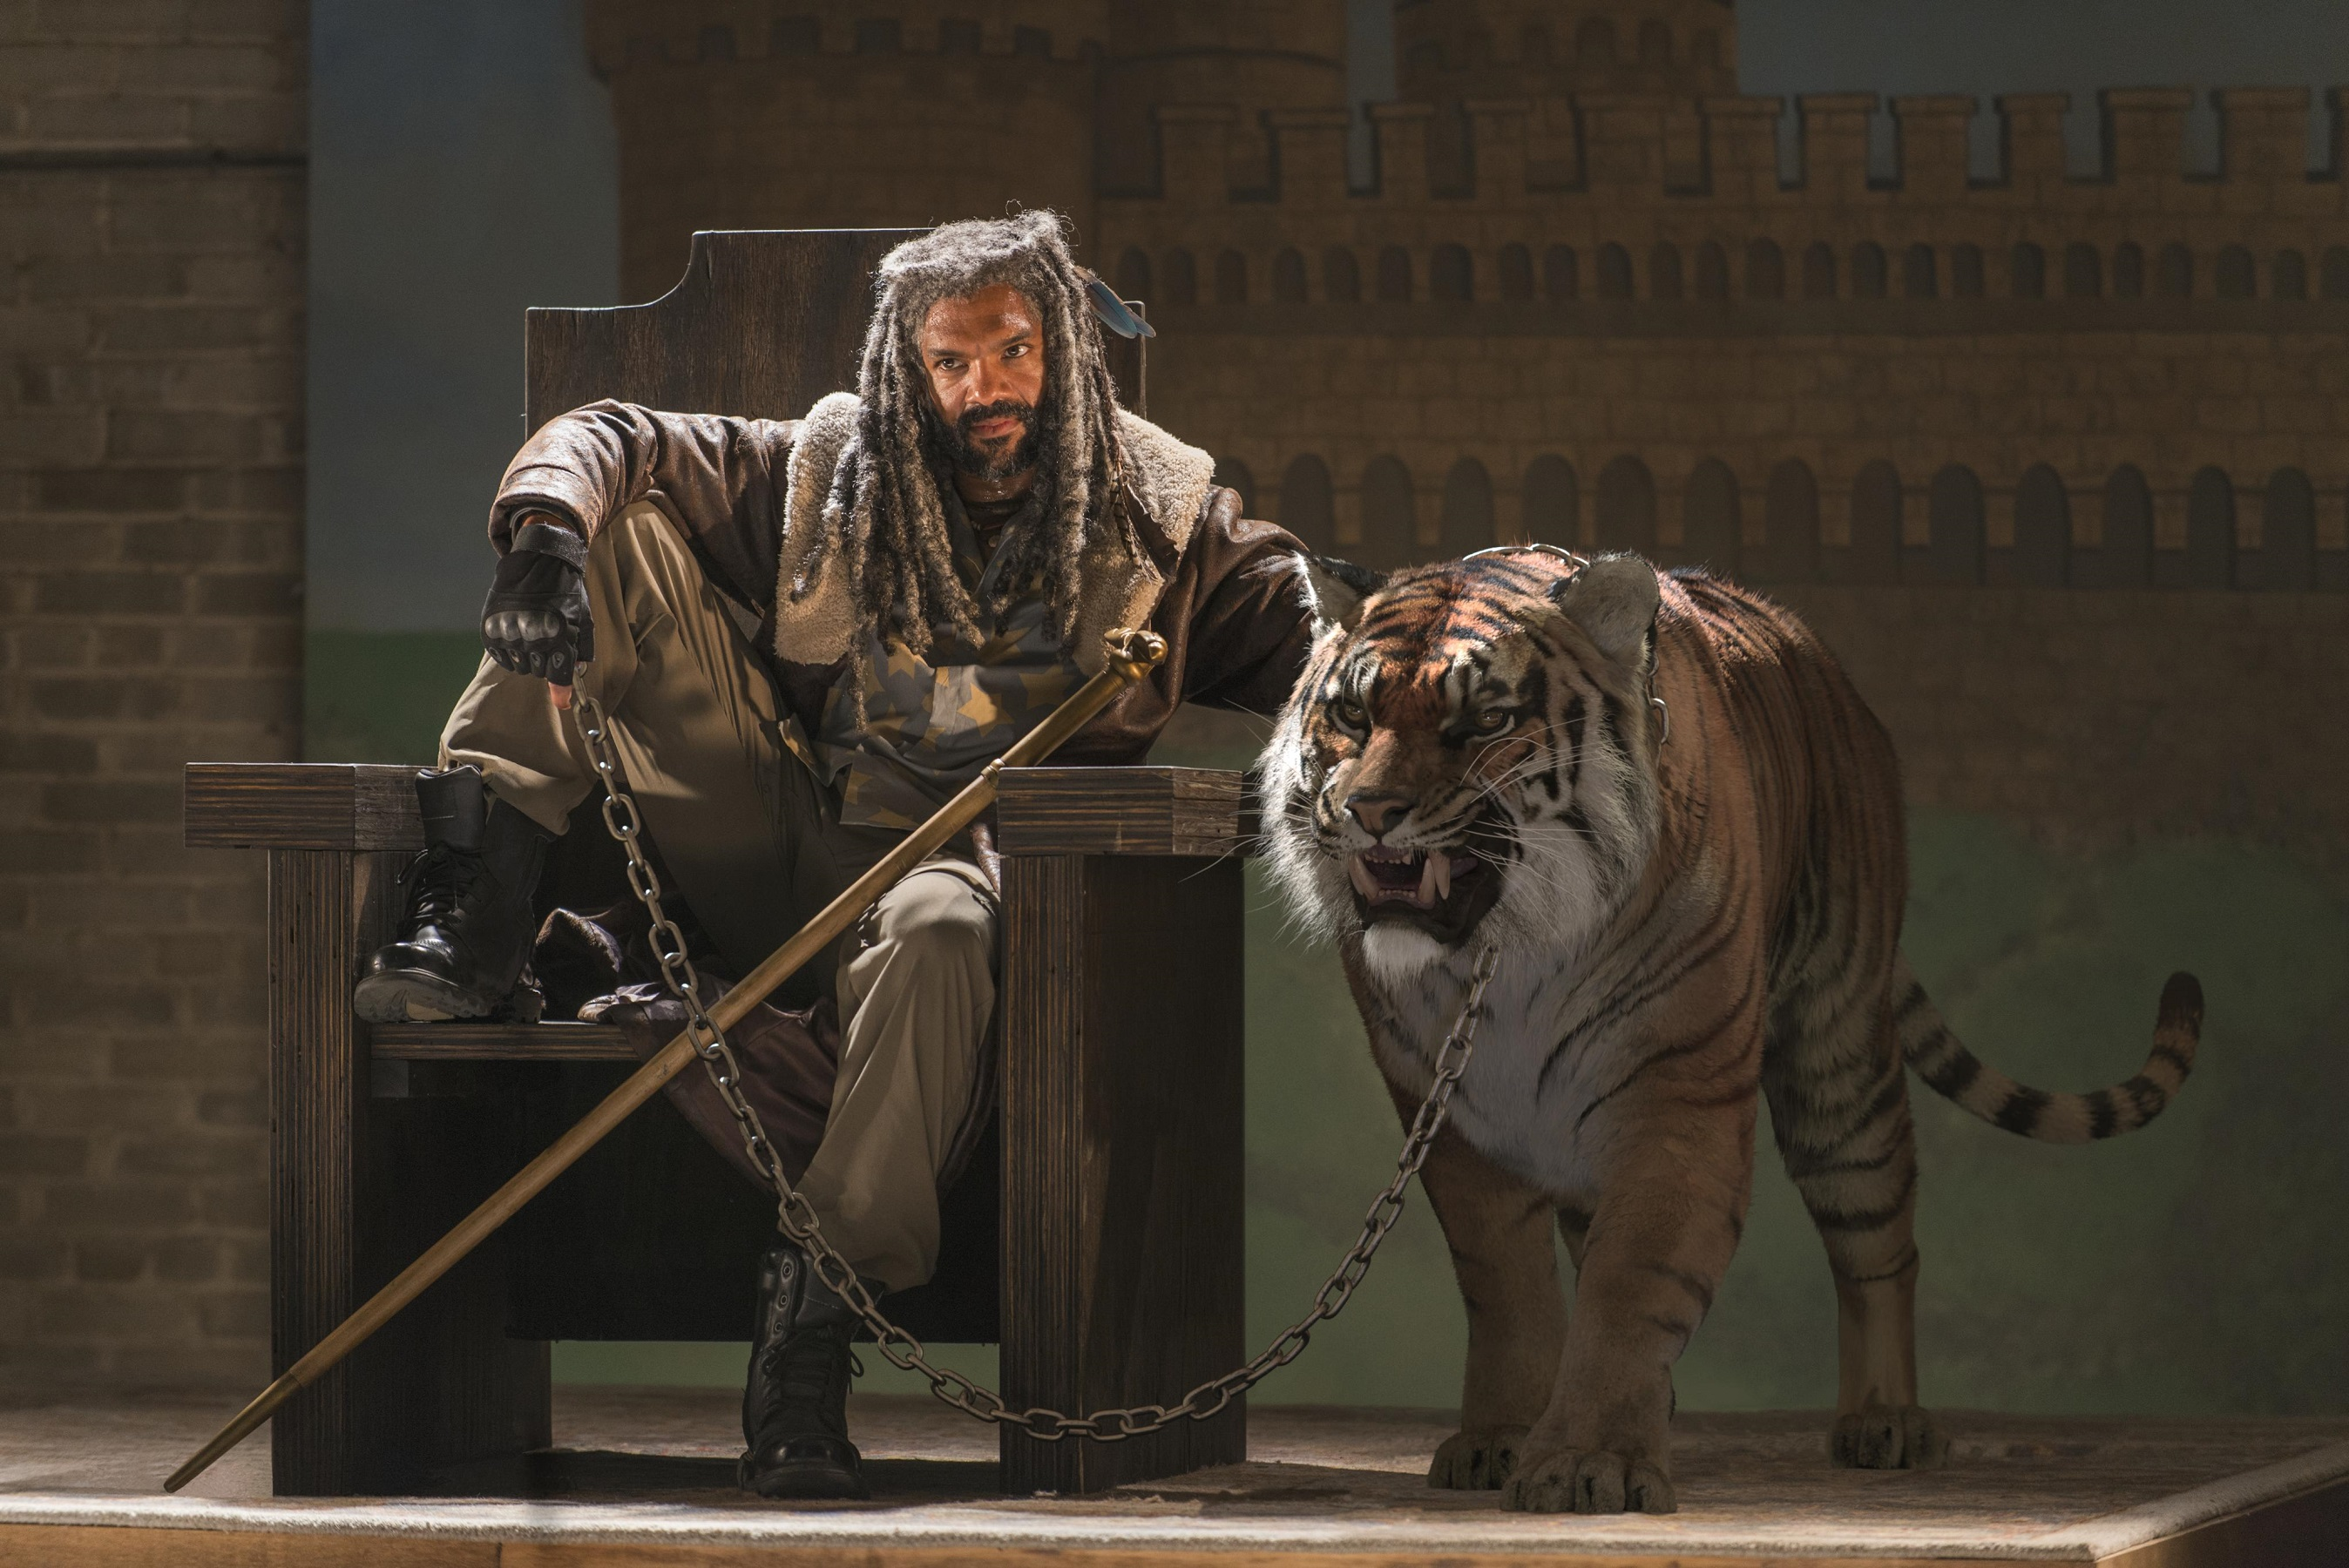 ezekiel the walking dead season 7, hd tv shows, 4k wallpapers